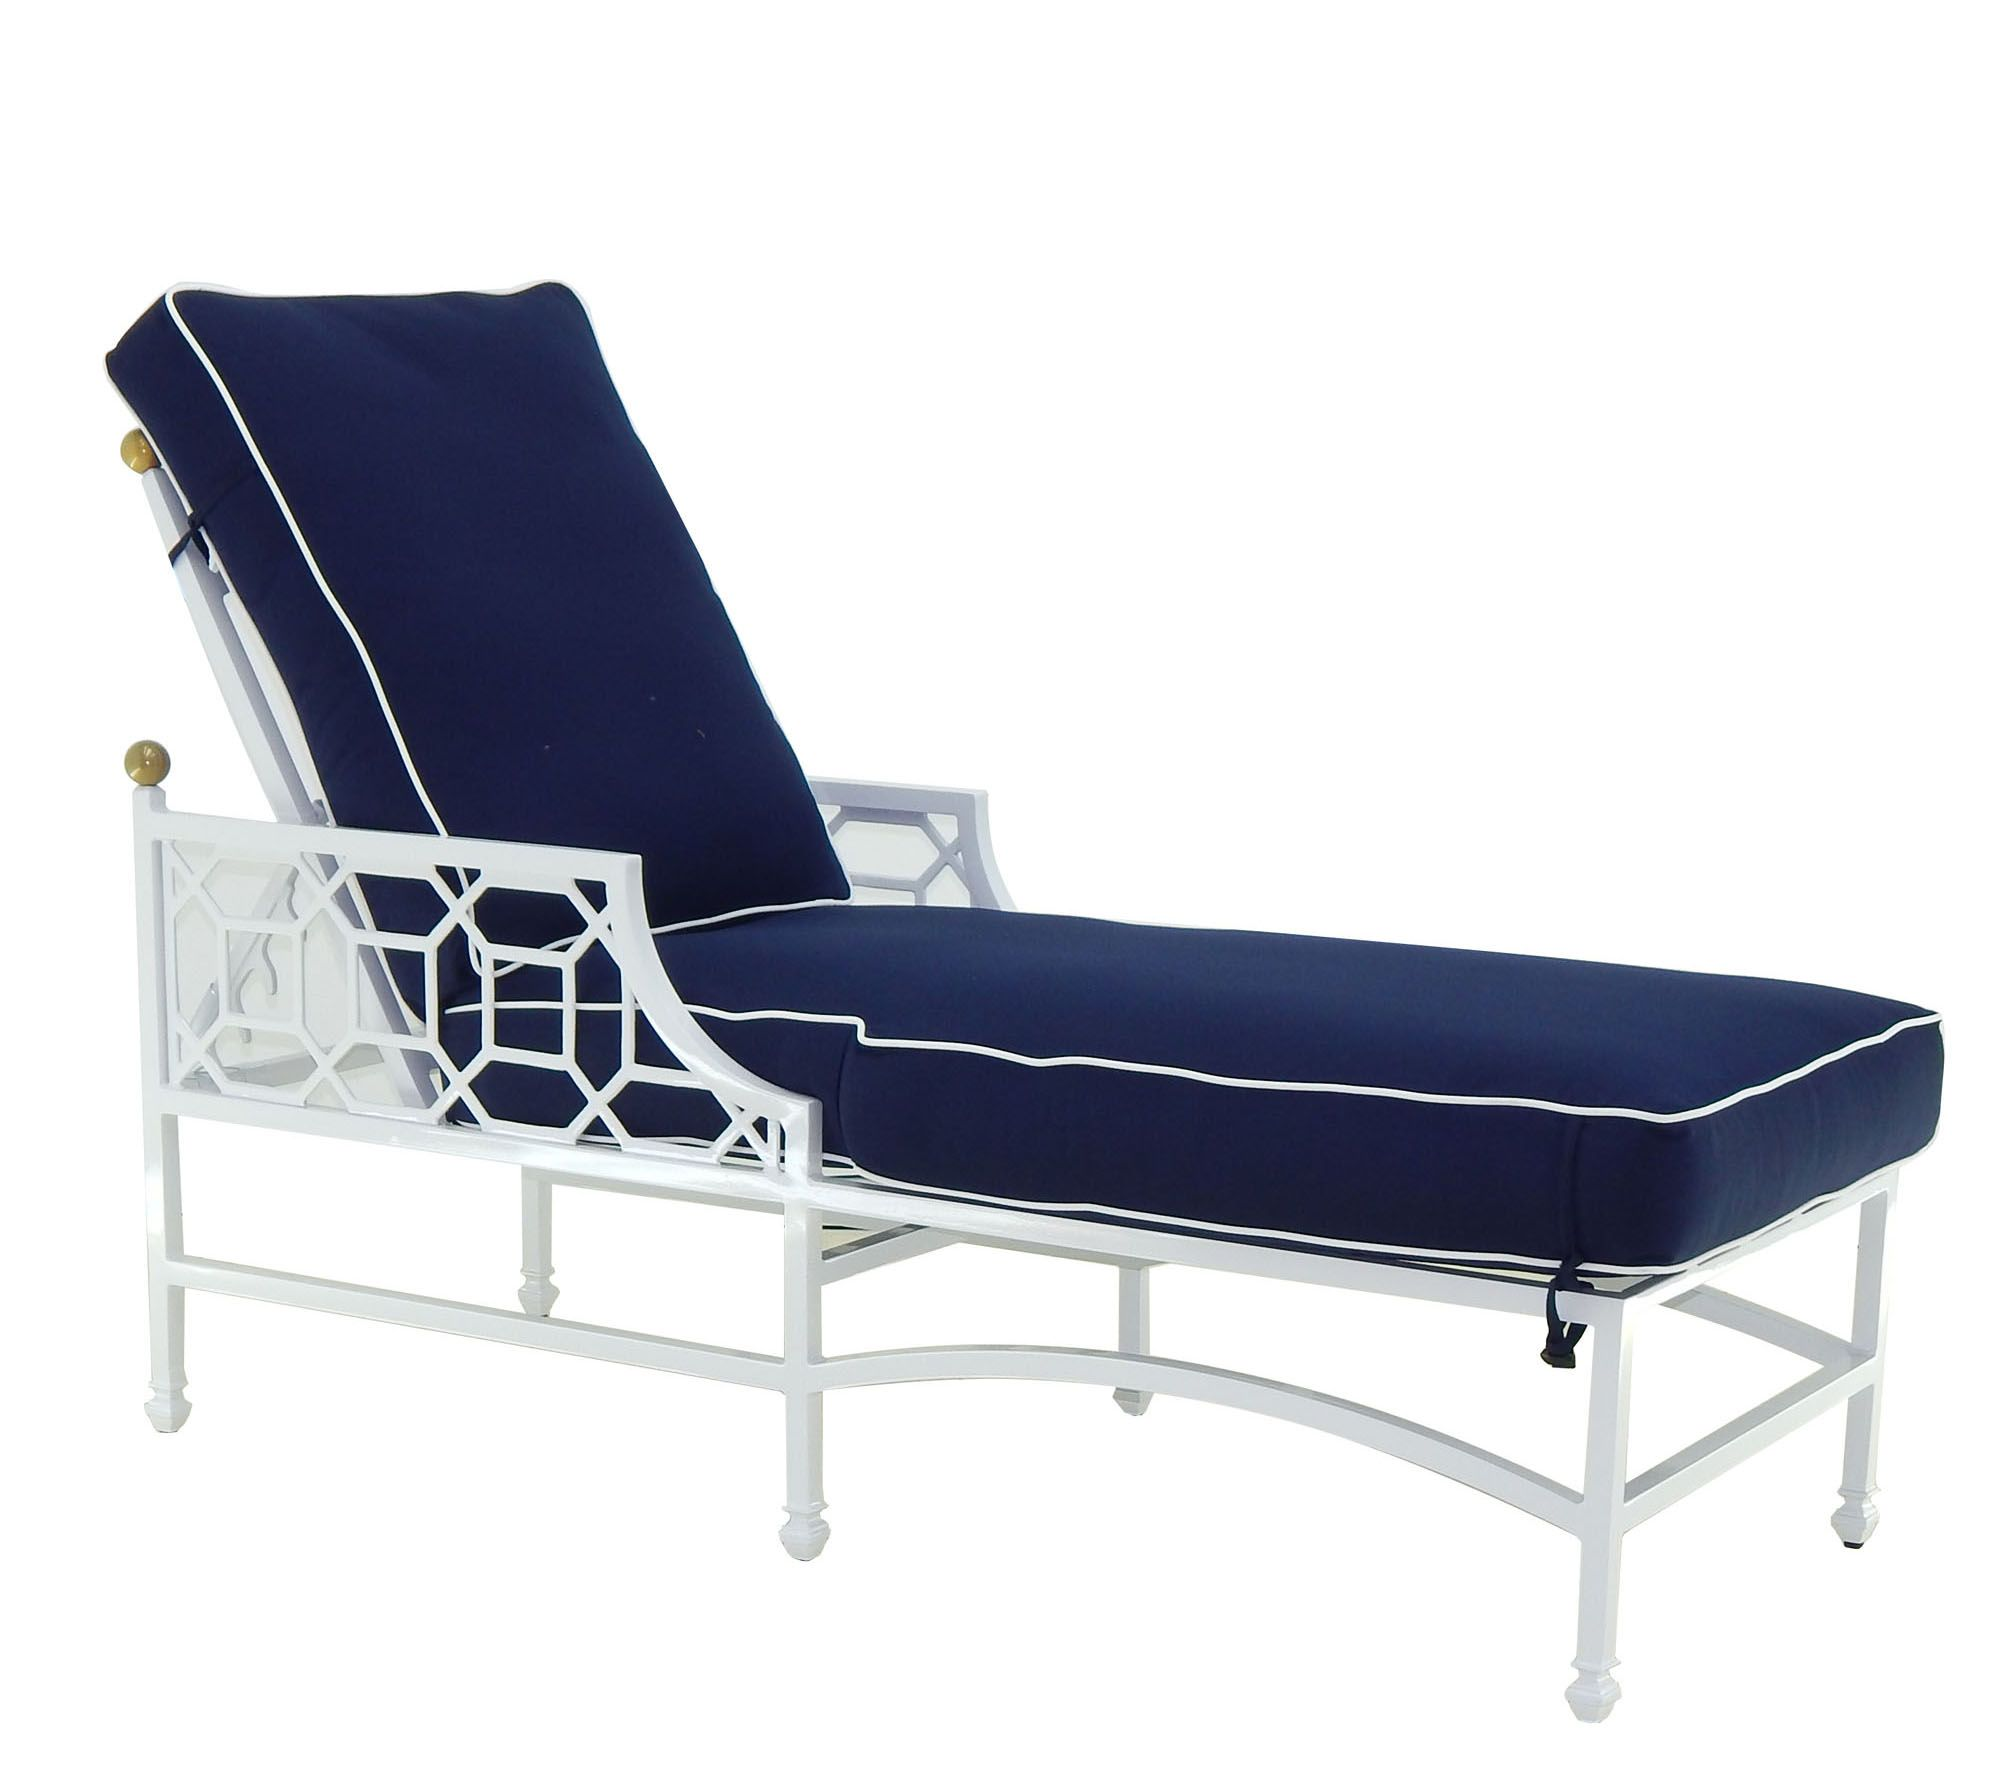 Signature Chaise Lounge